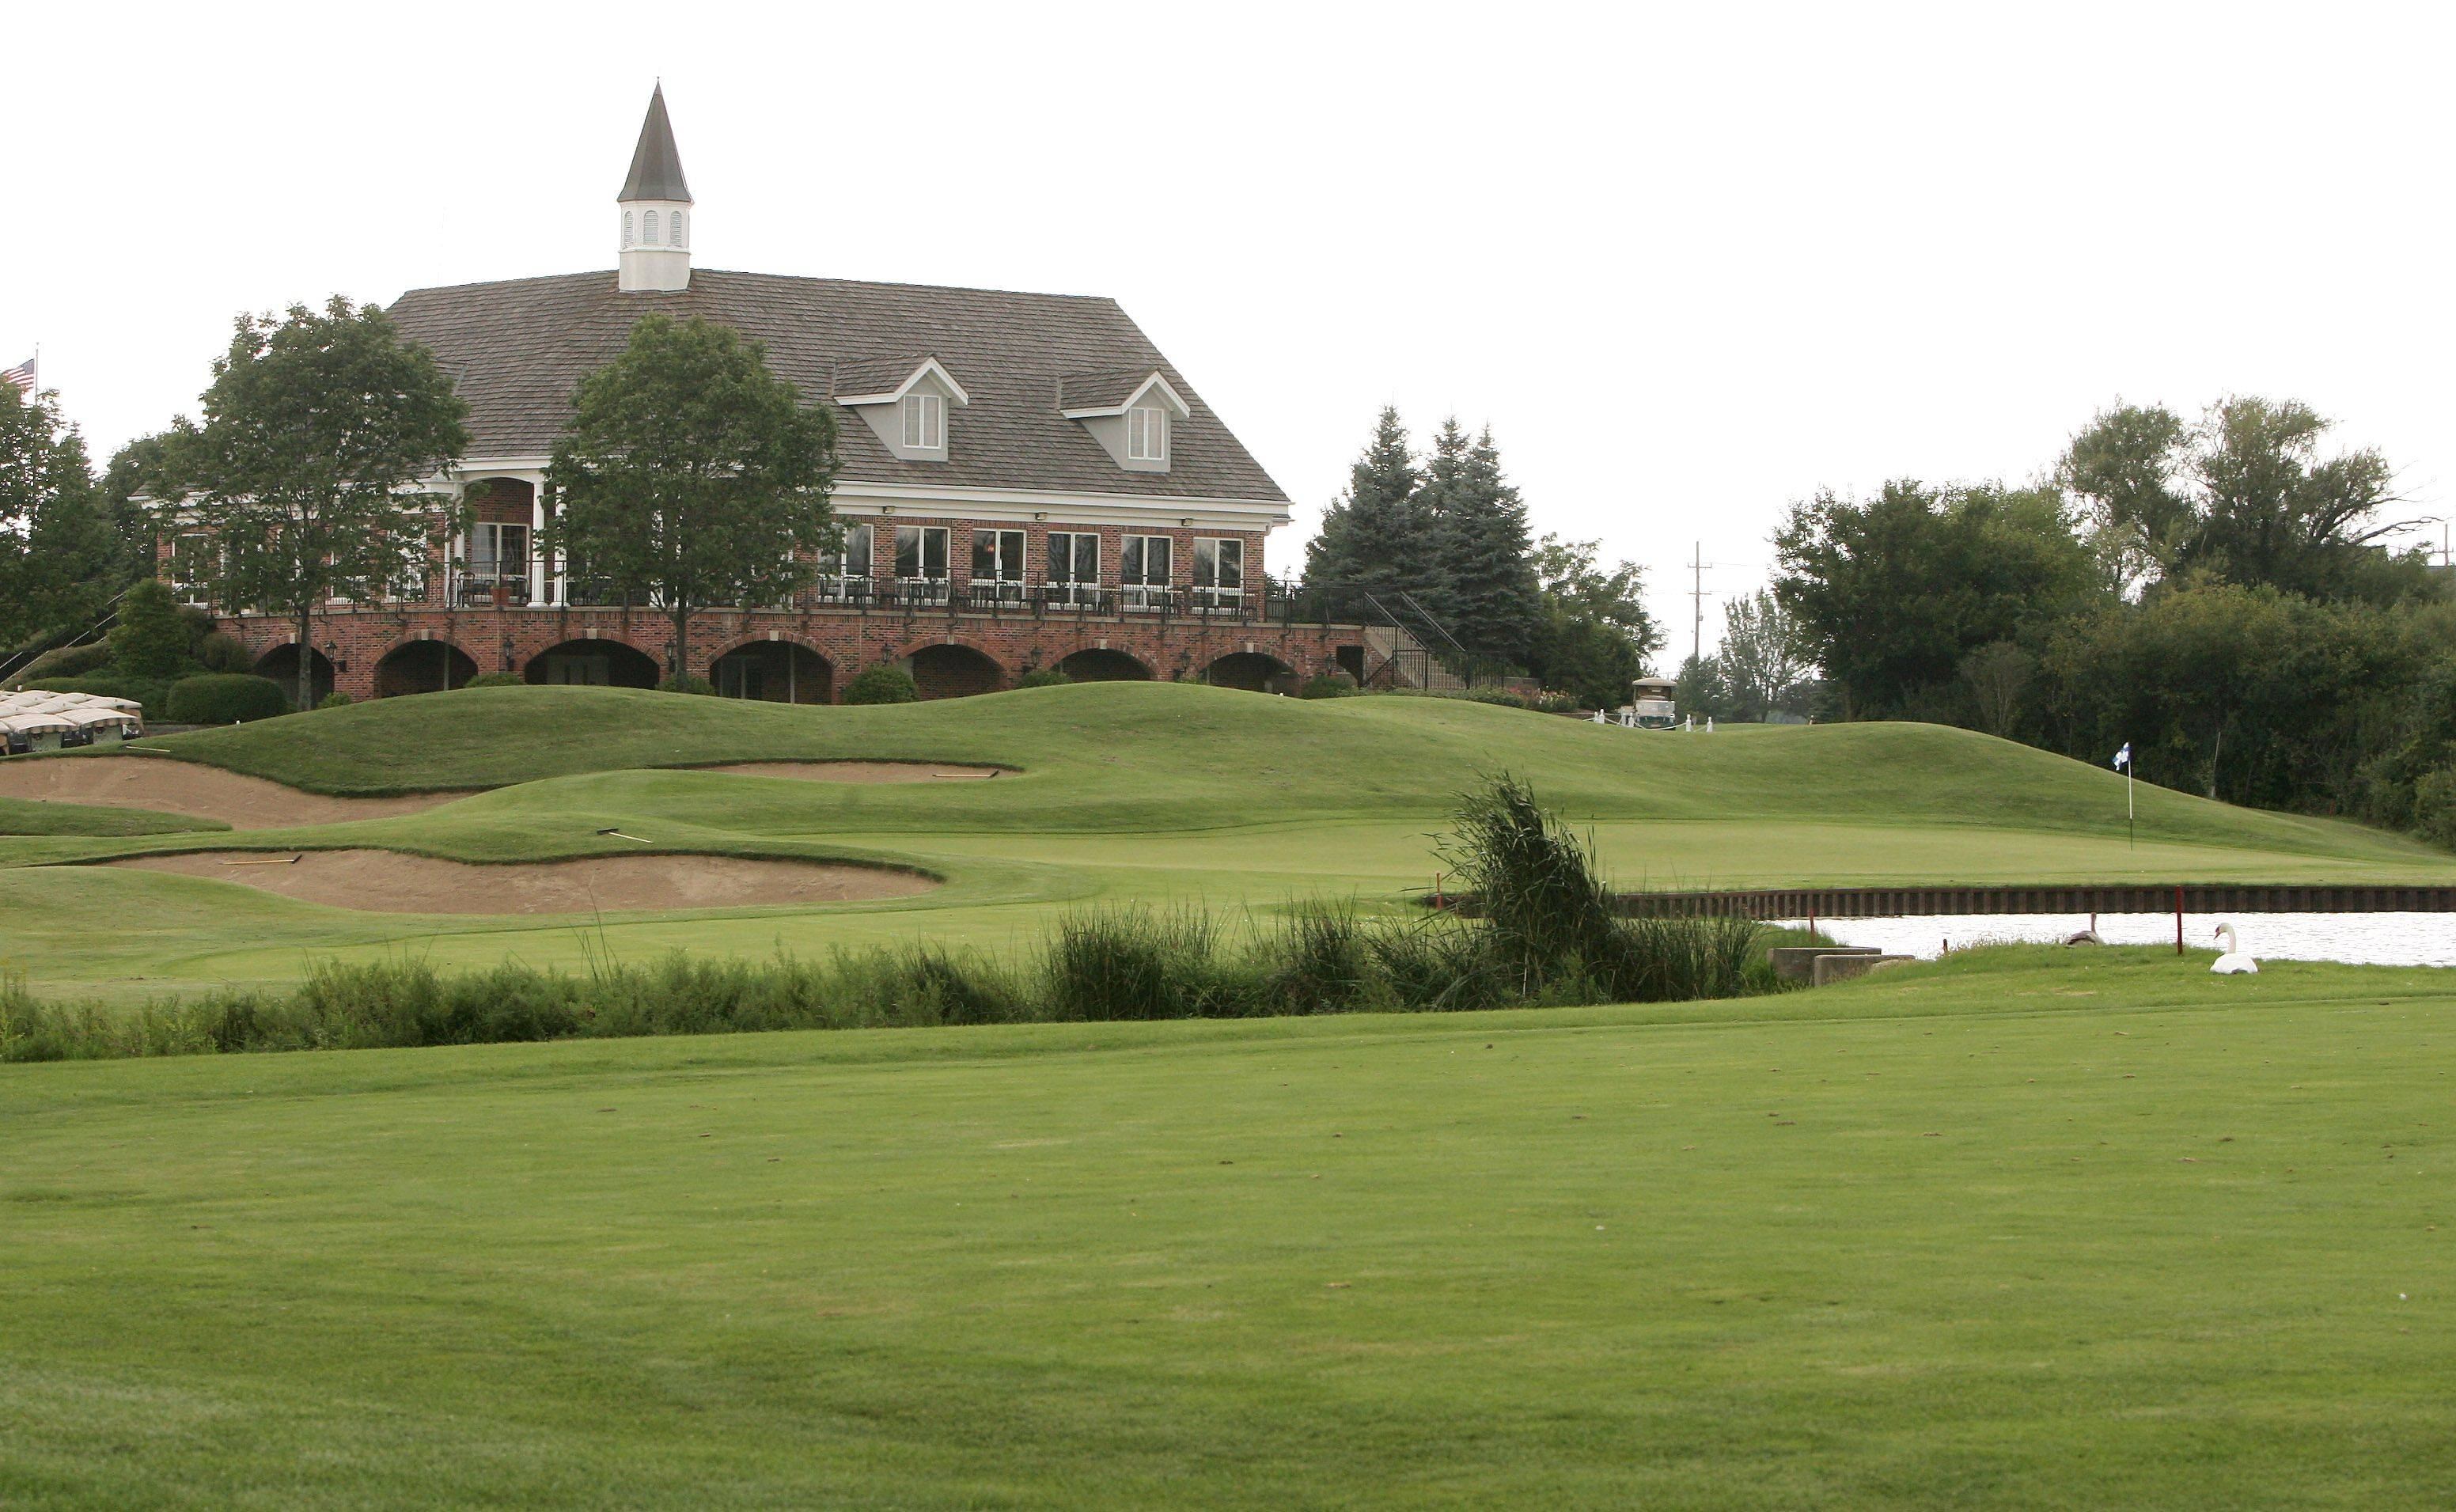 The 18th hole at Steeple Chase Golf Club in Mundelein.